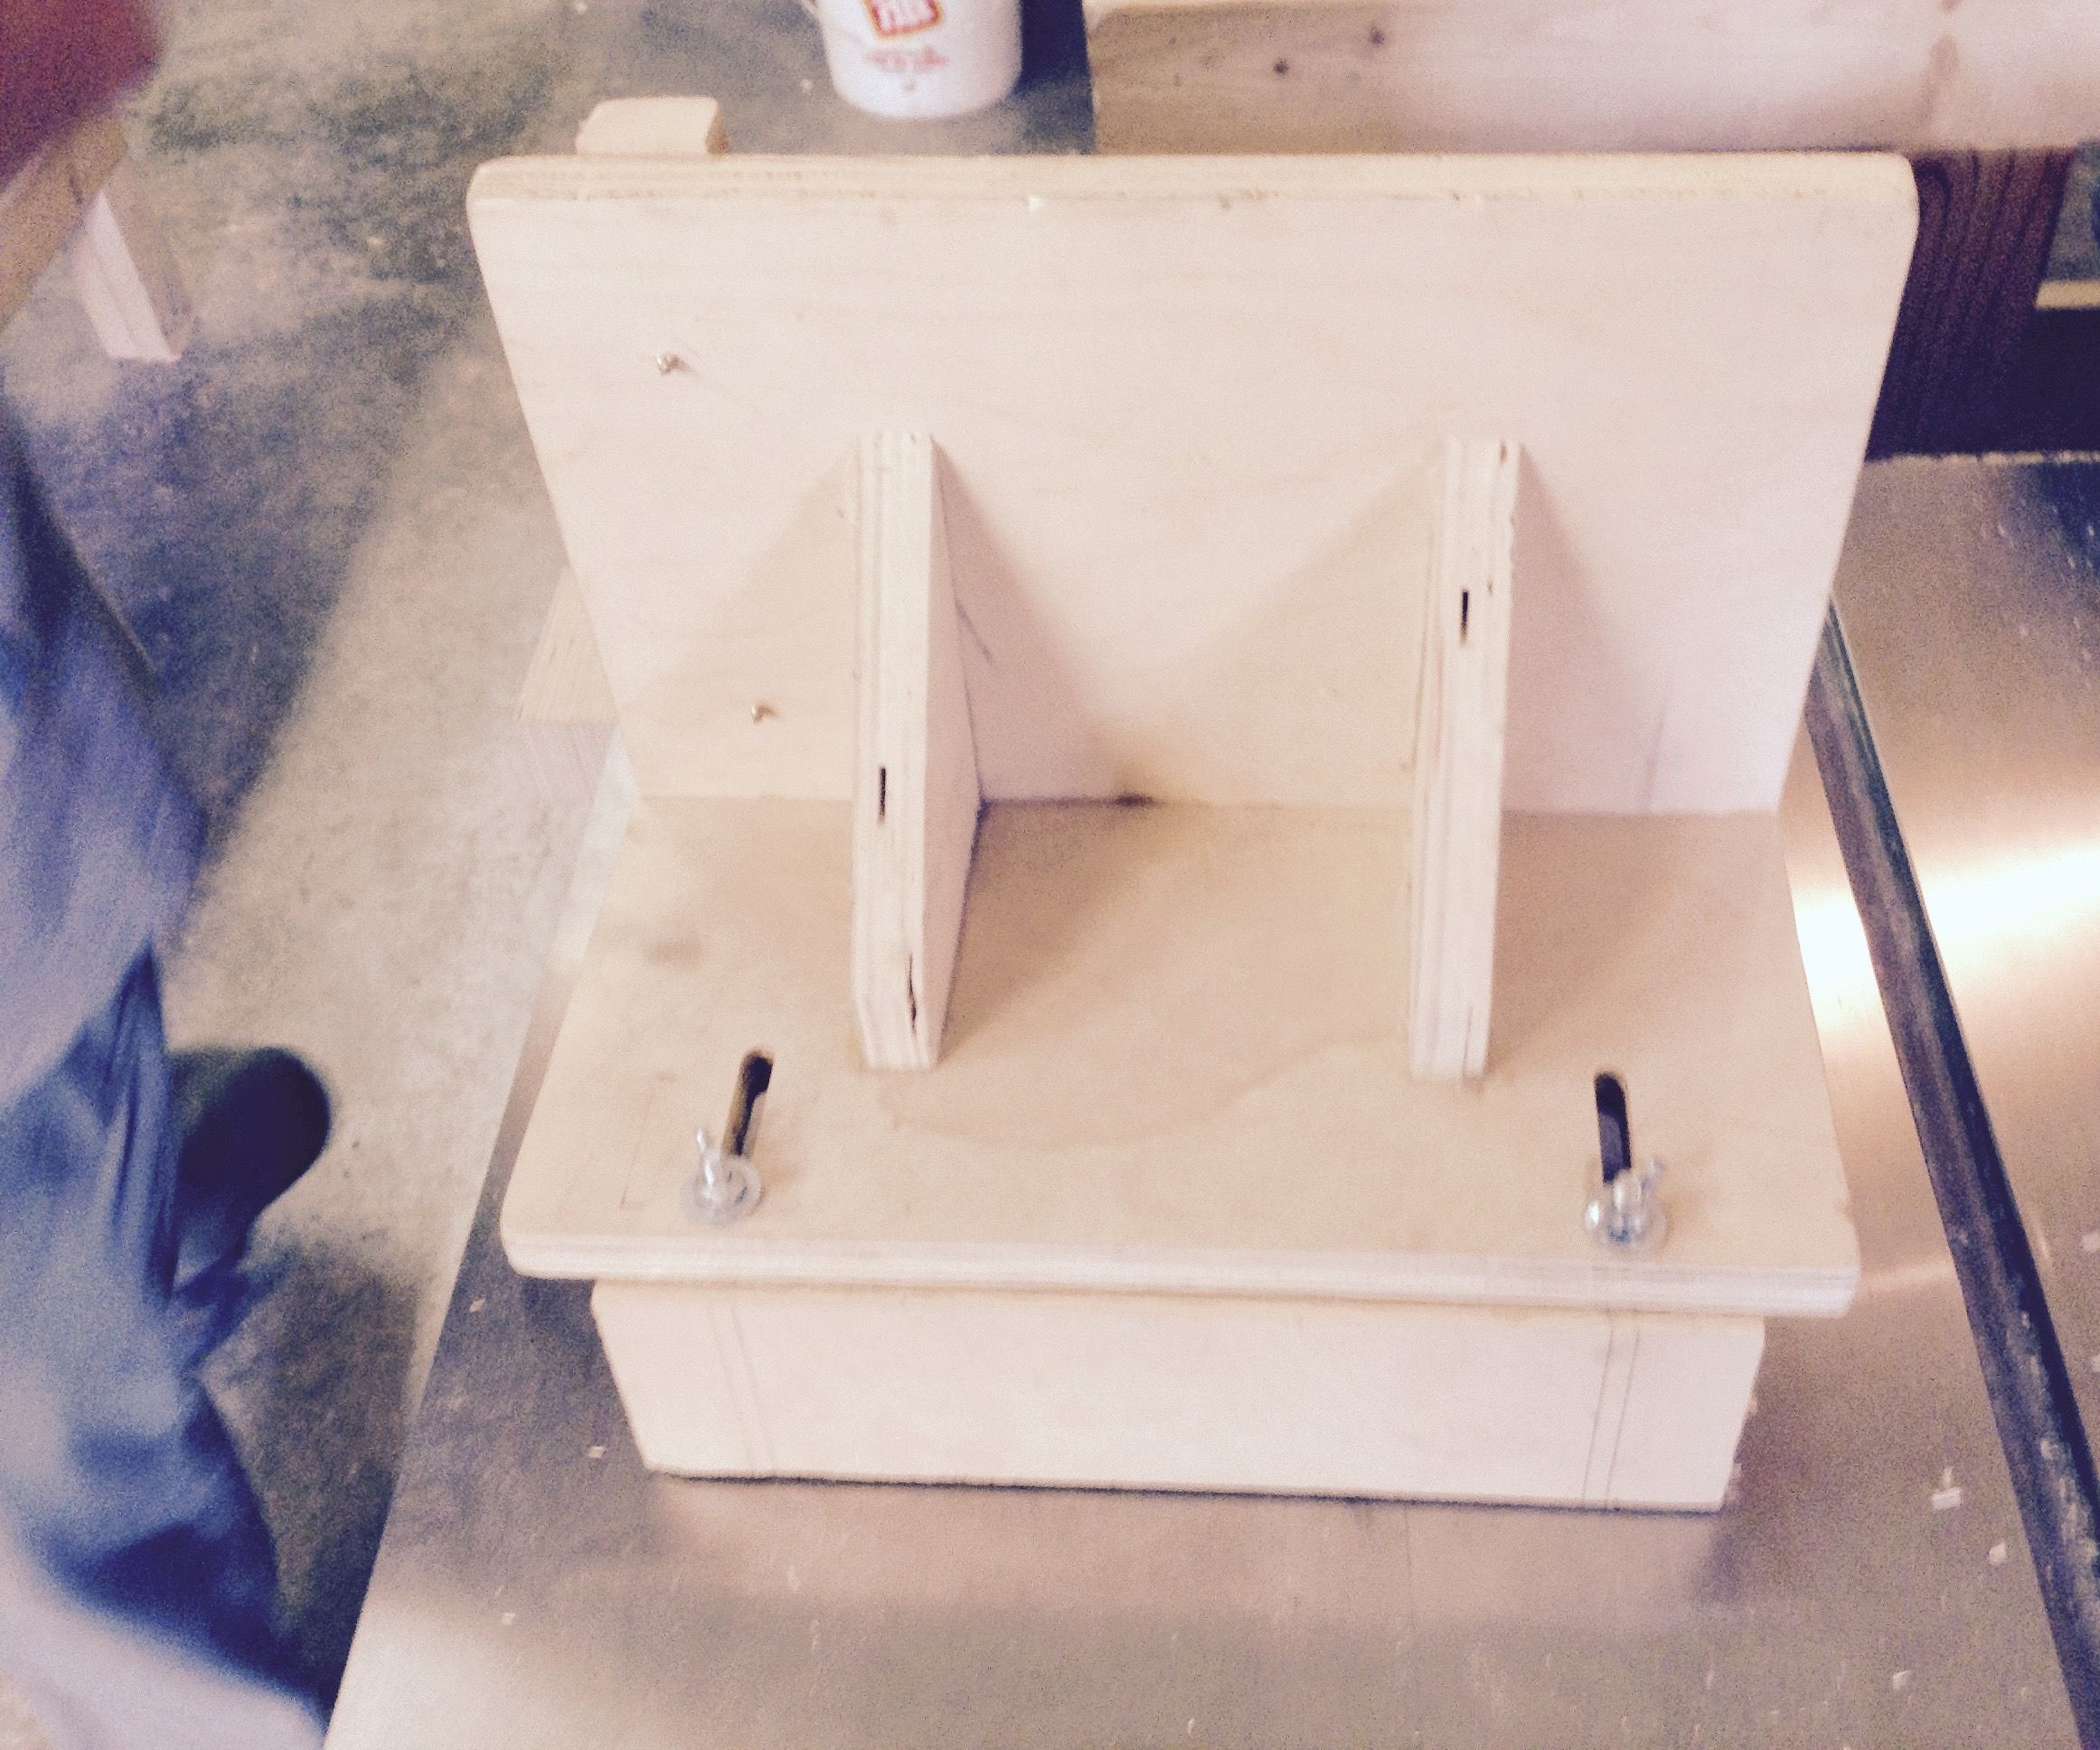 Tenon Cutting Jig for a Table Saw